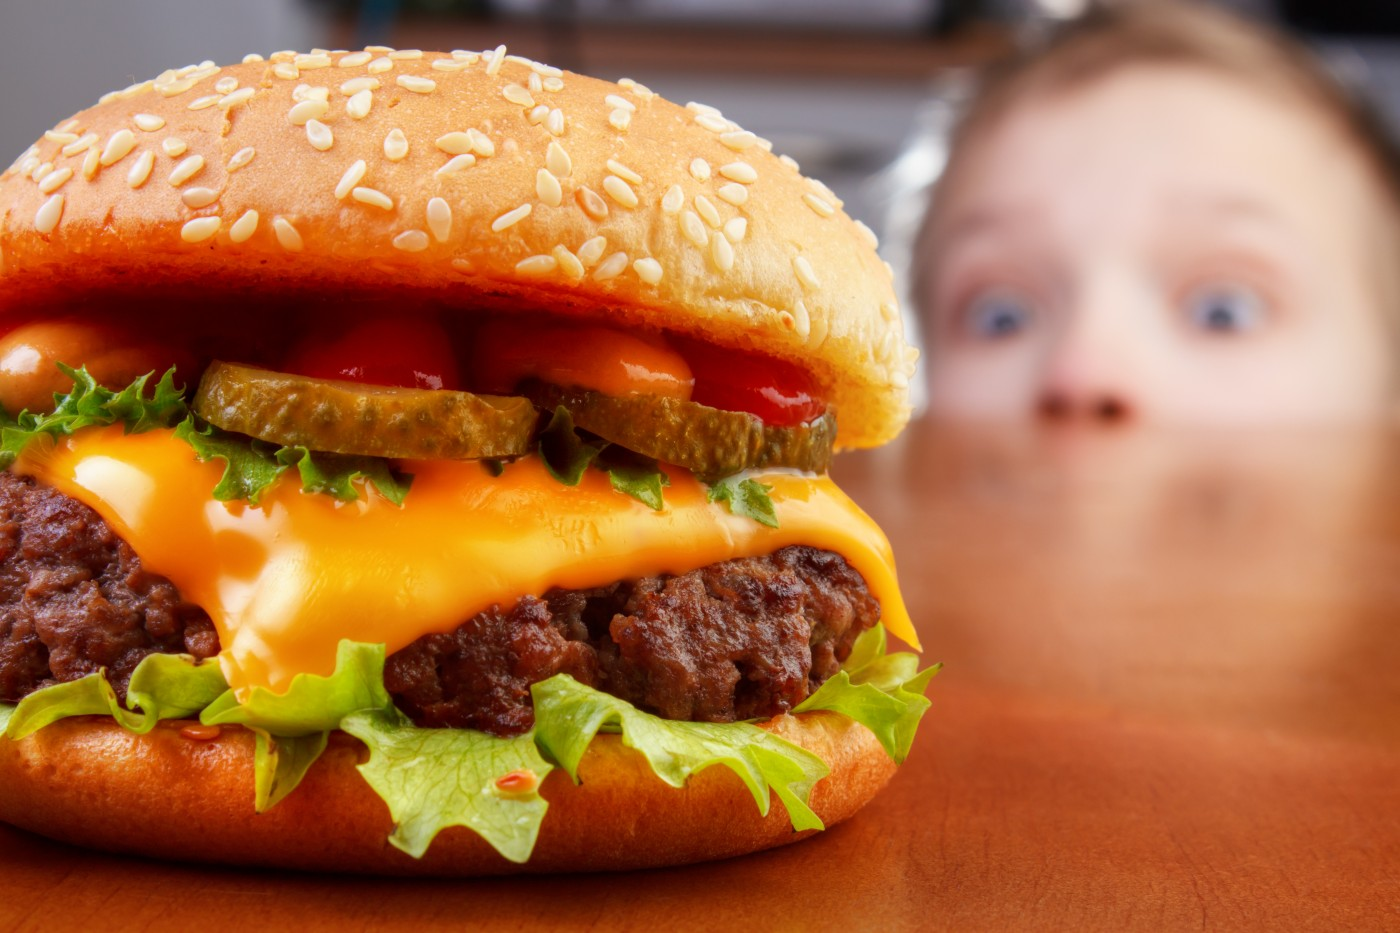 Pilot Project to Study Impact on Obesity of Fast Food Zoning Regulations Around Schools